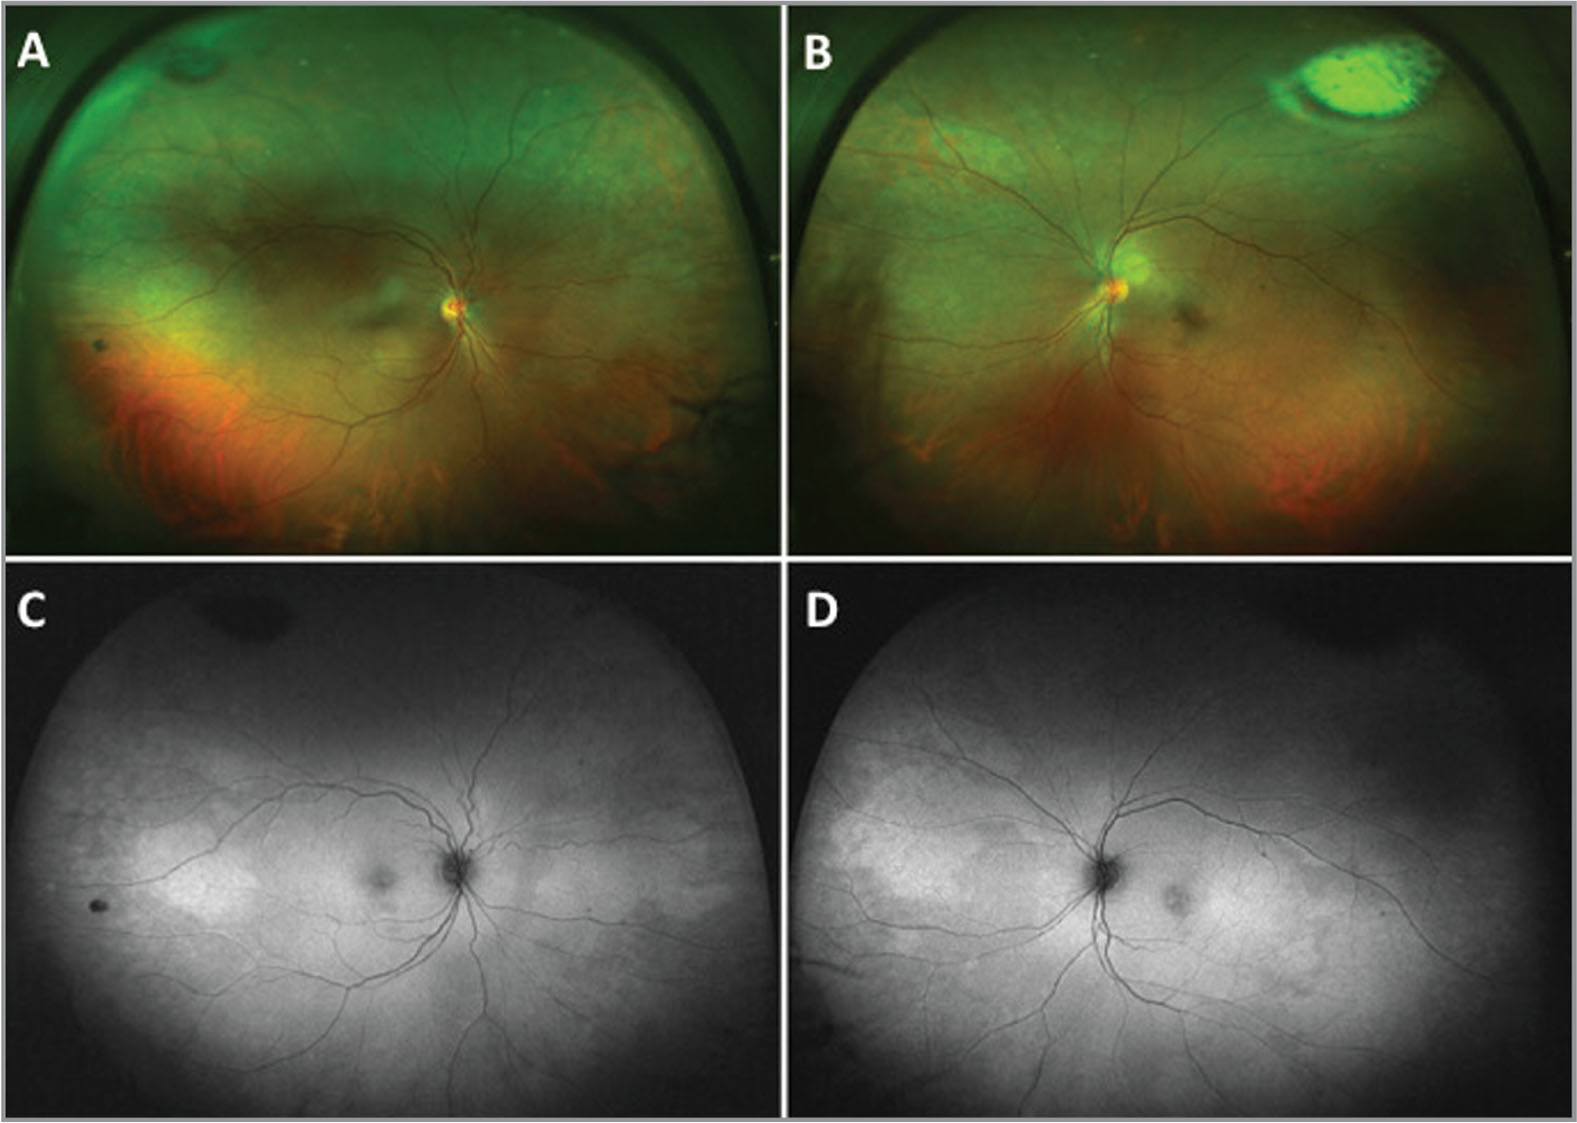 Widefield fundus photos of (A) the right eye and (B) the left eye showing patchy pigmentary changes (artifact noted in superotemporal quadrant.) Fundus autofluorescence (C) of the right eye and (D) of the left eye showing patchy hyperautofluorescence corresponding to the areas of pigmentary changes.